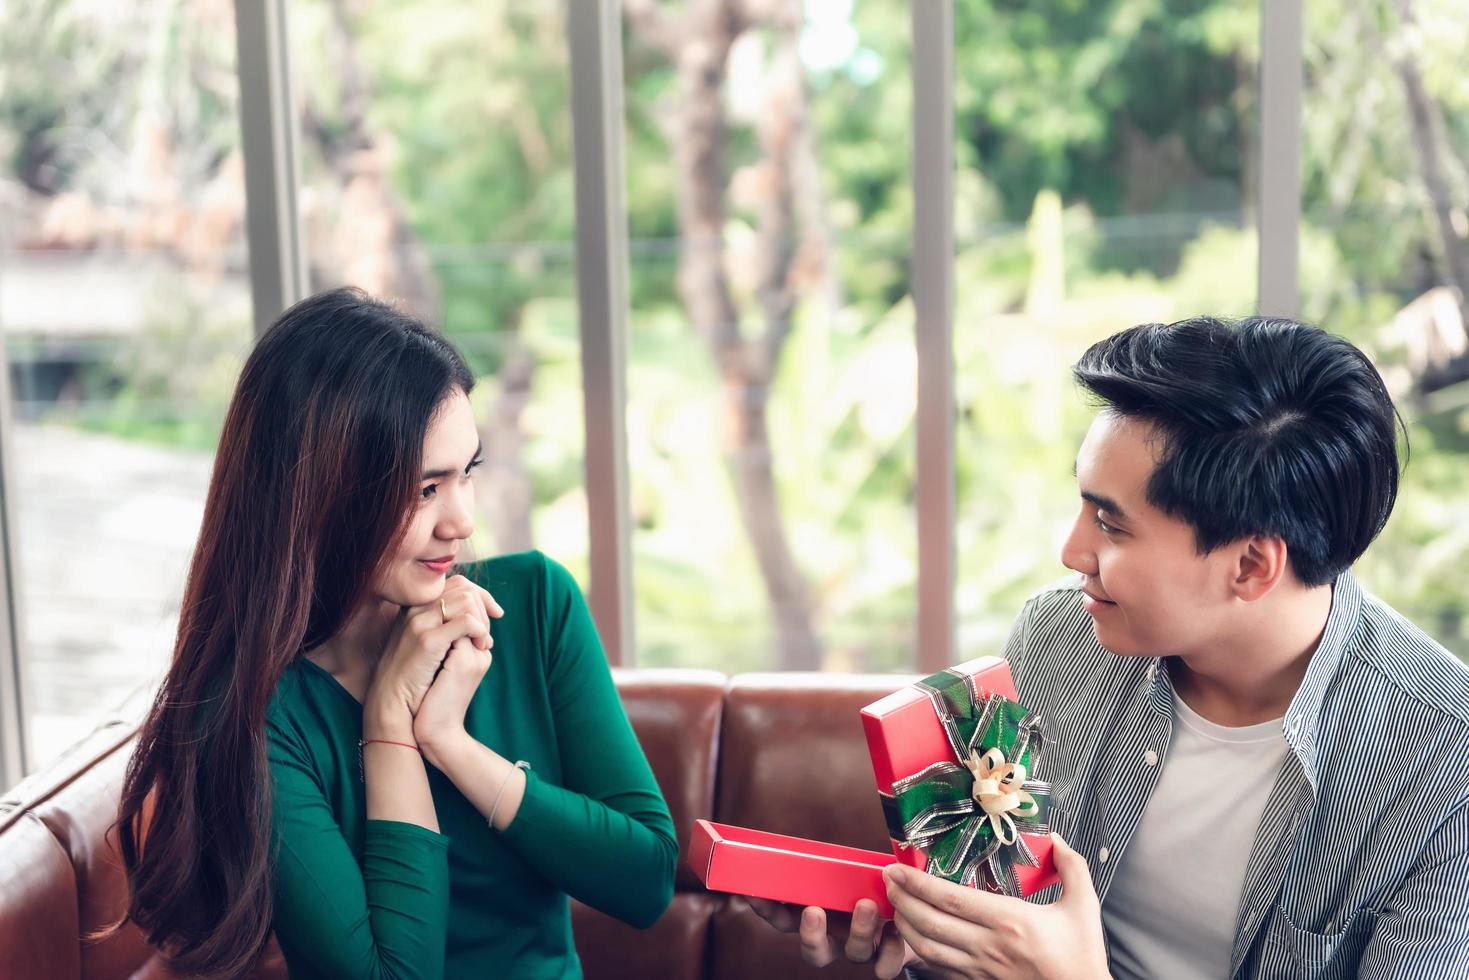 Man surprises girlfriend a with gift photo